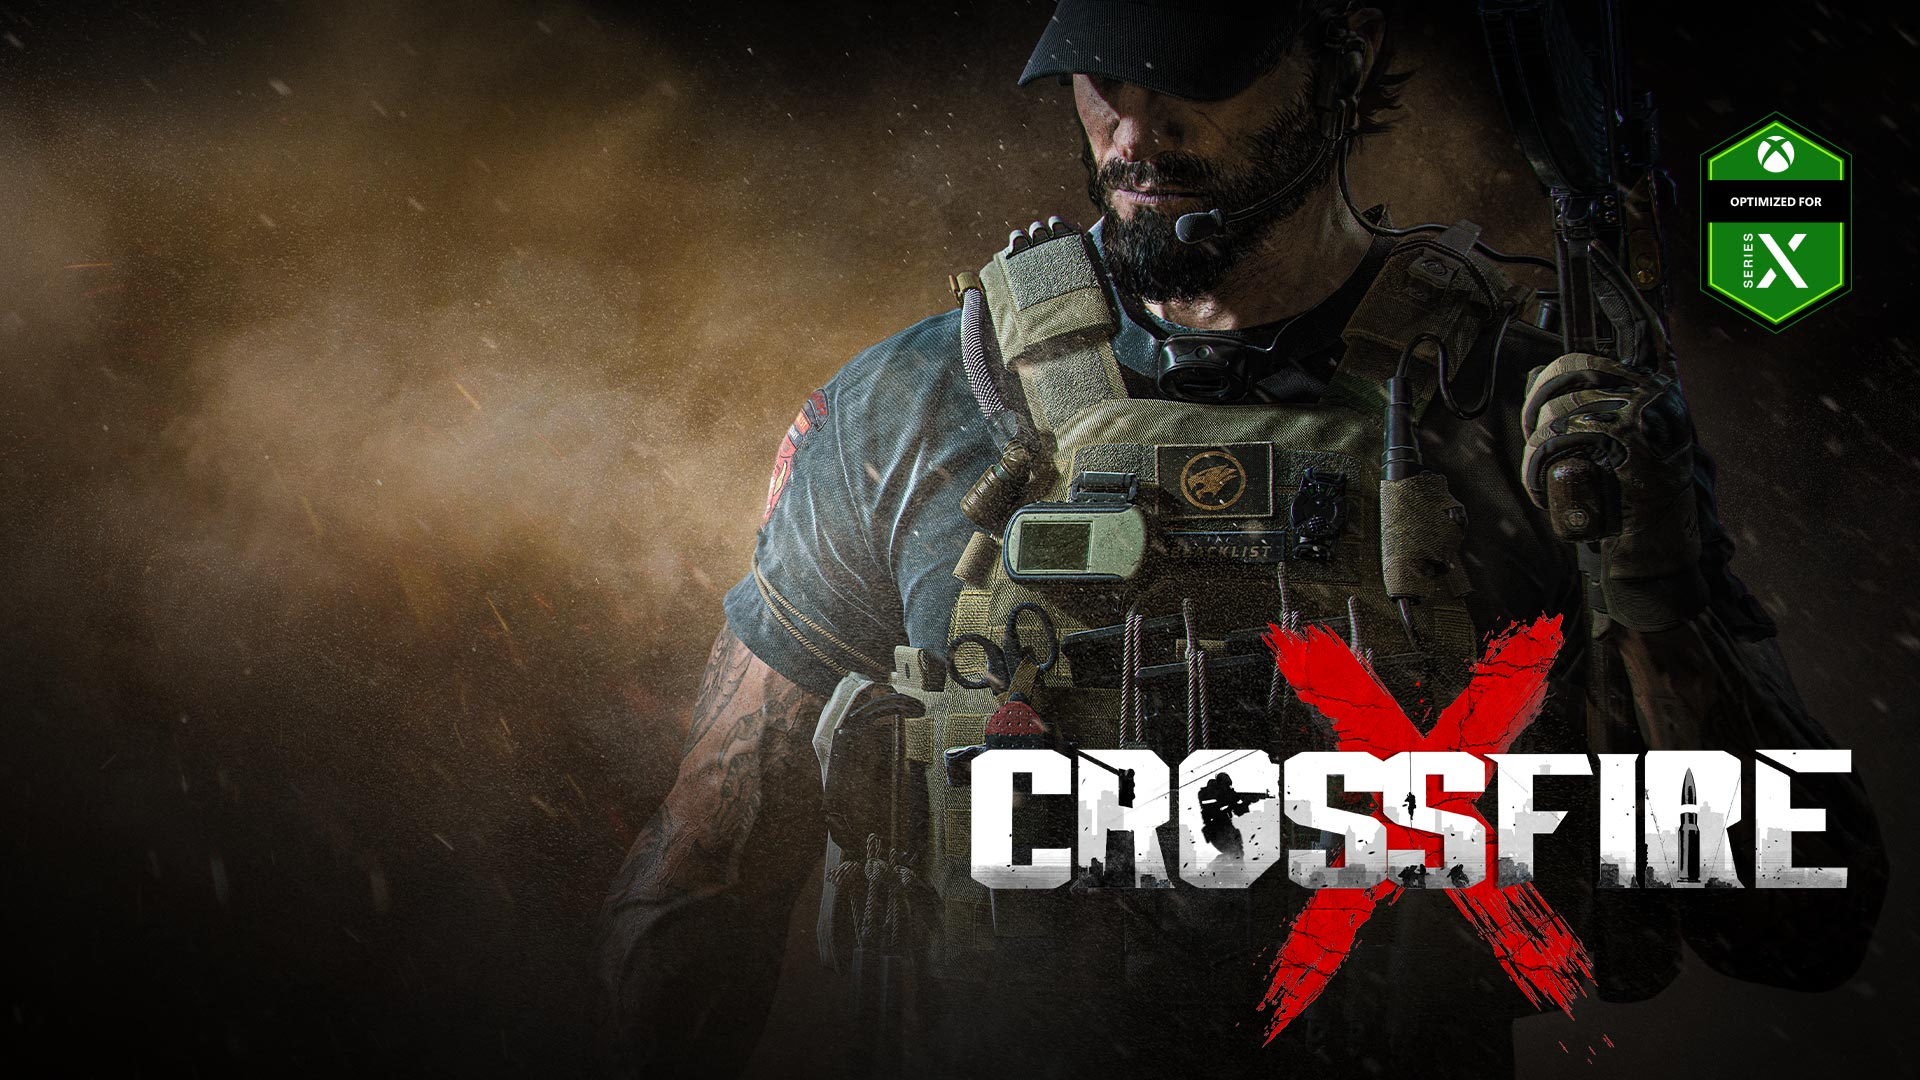 CrossfireX, Optimized for Xbox Series X, A heavily geared man stands amidst smoke and ash